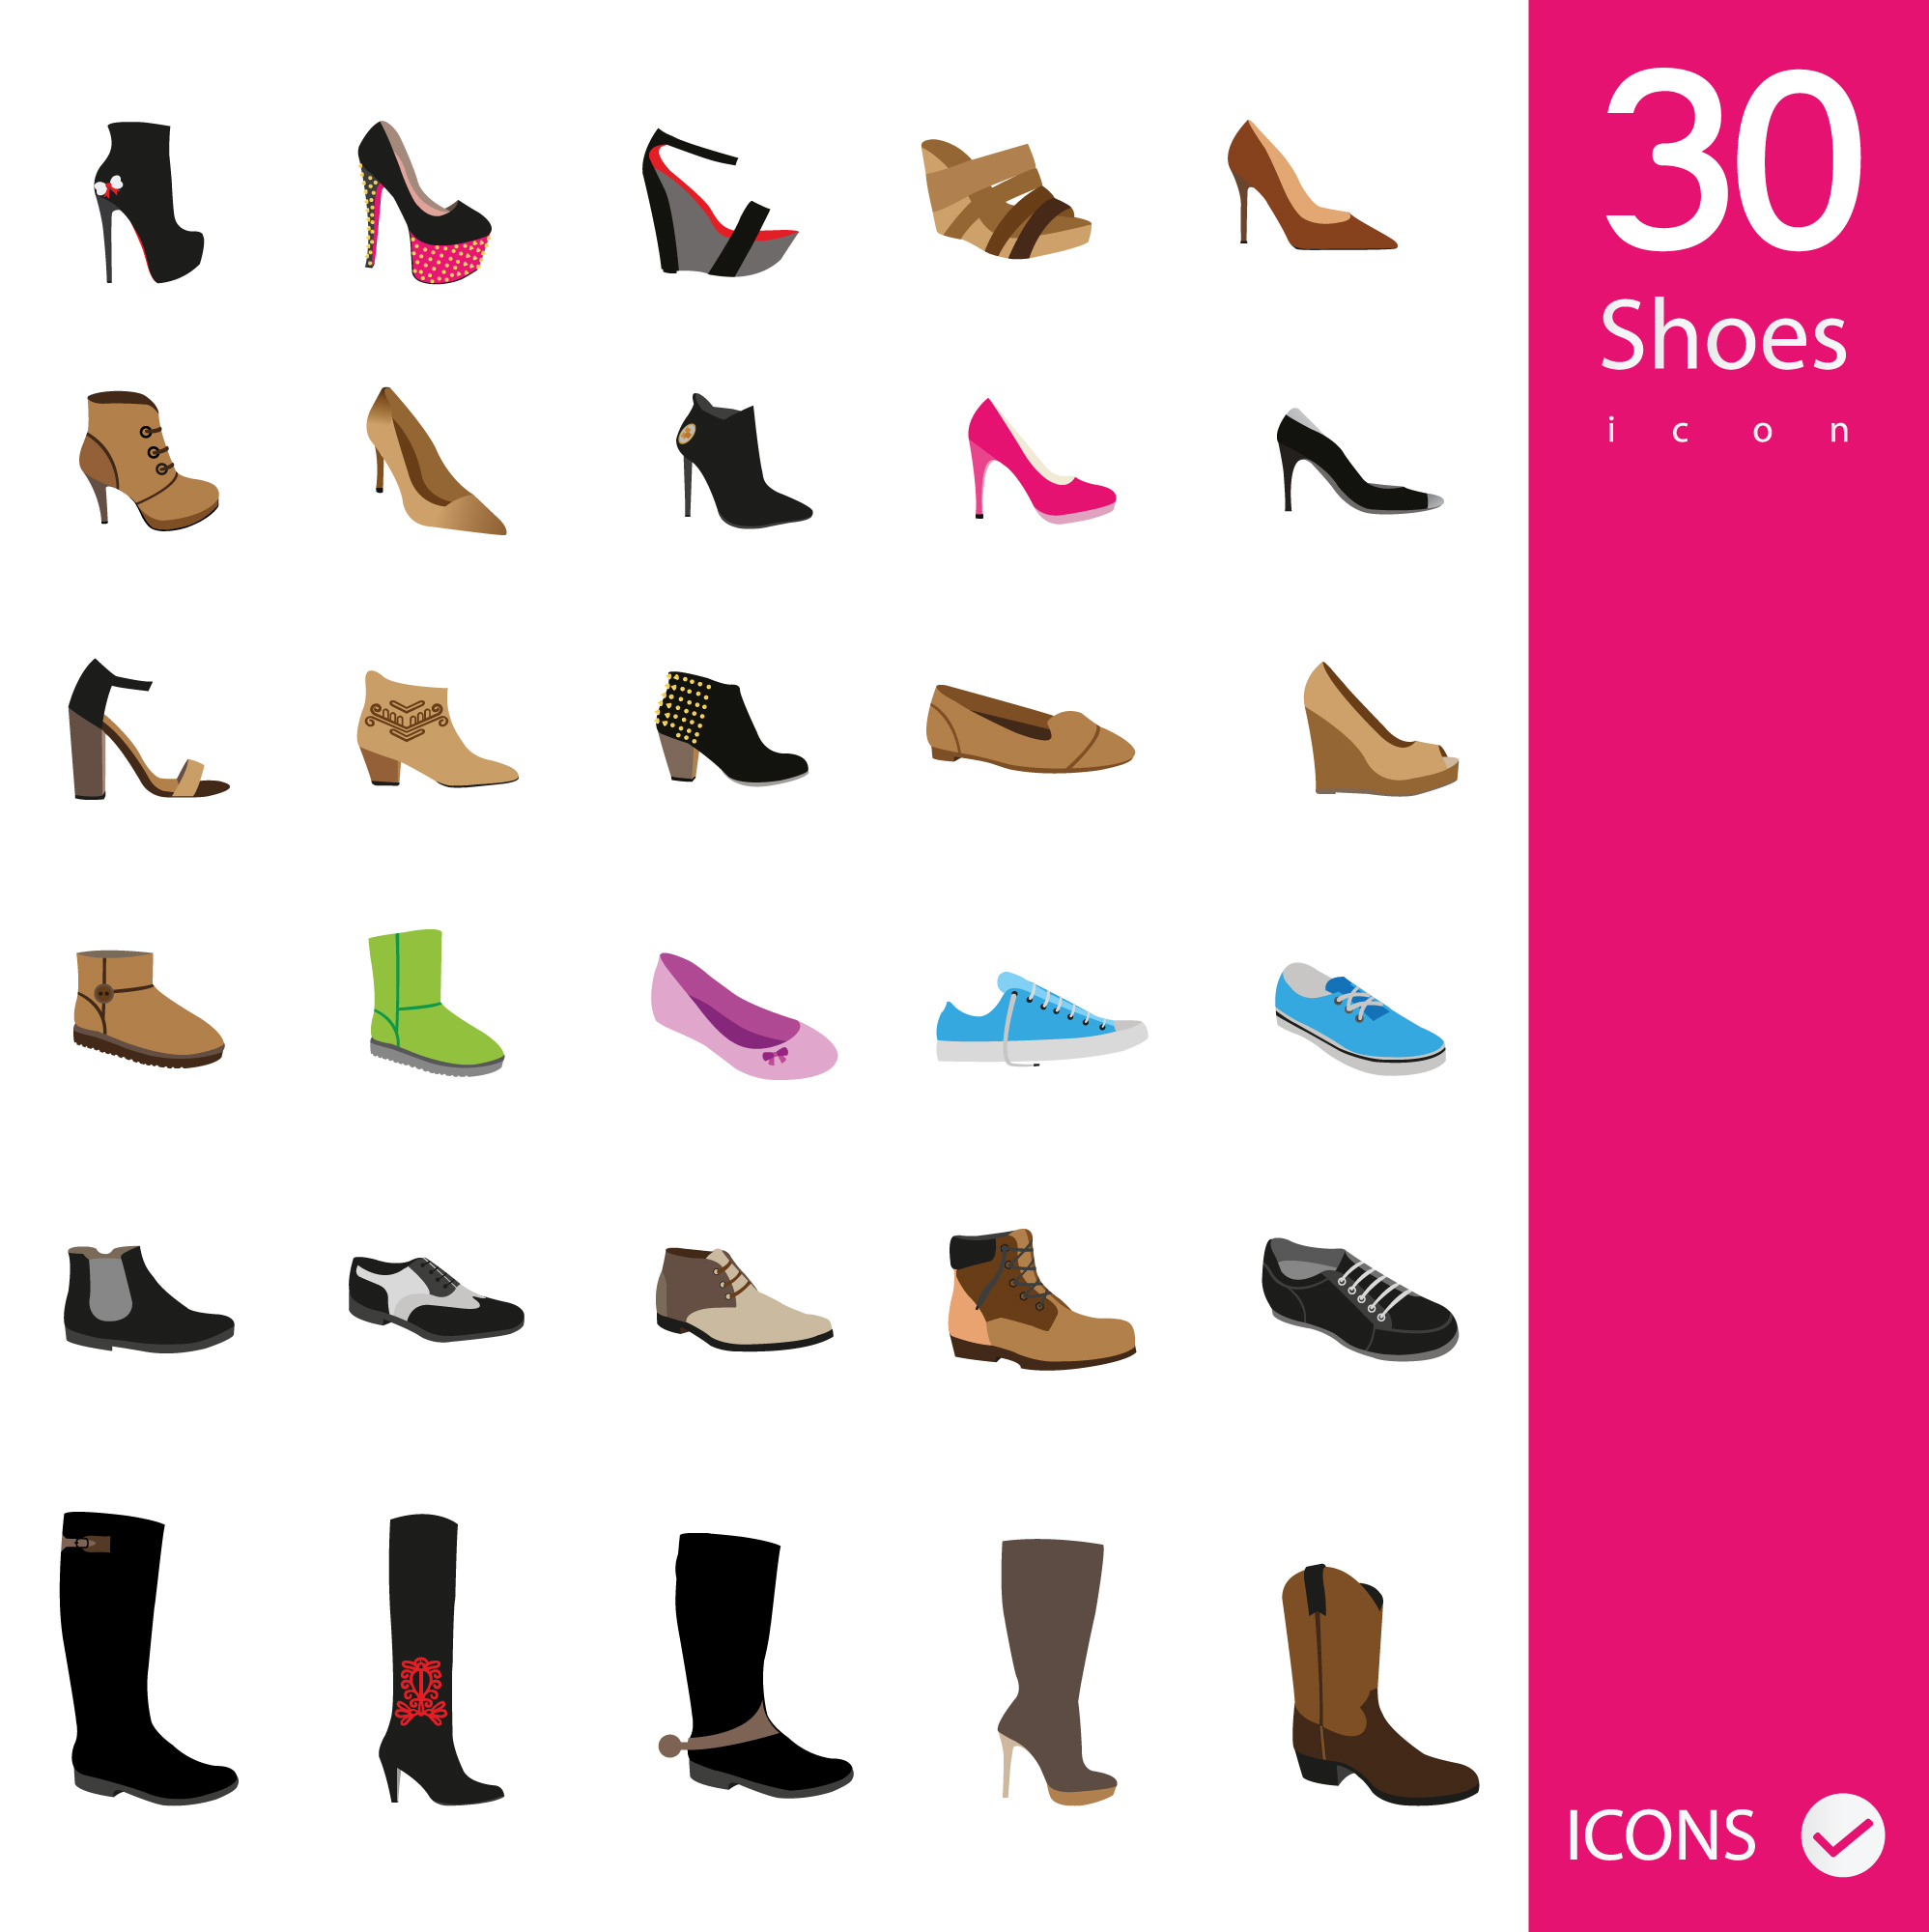 Shoes icons collection